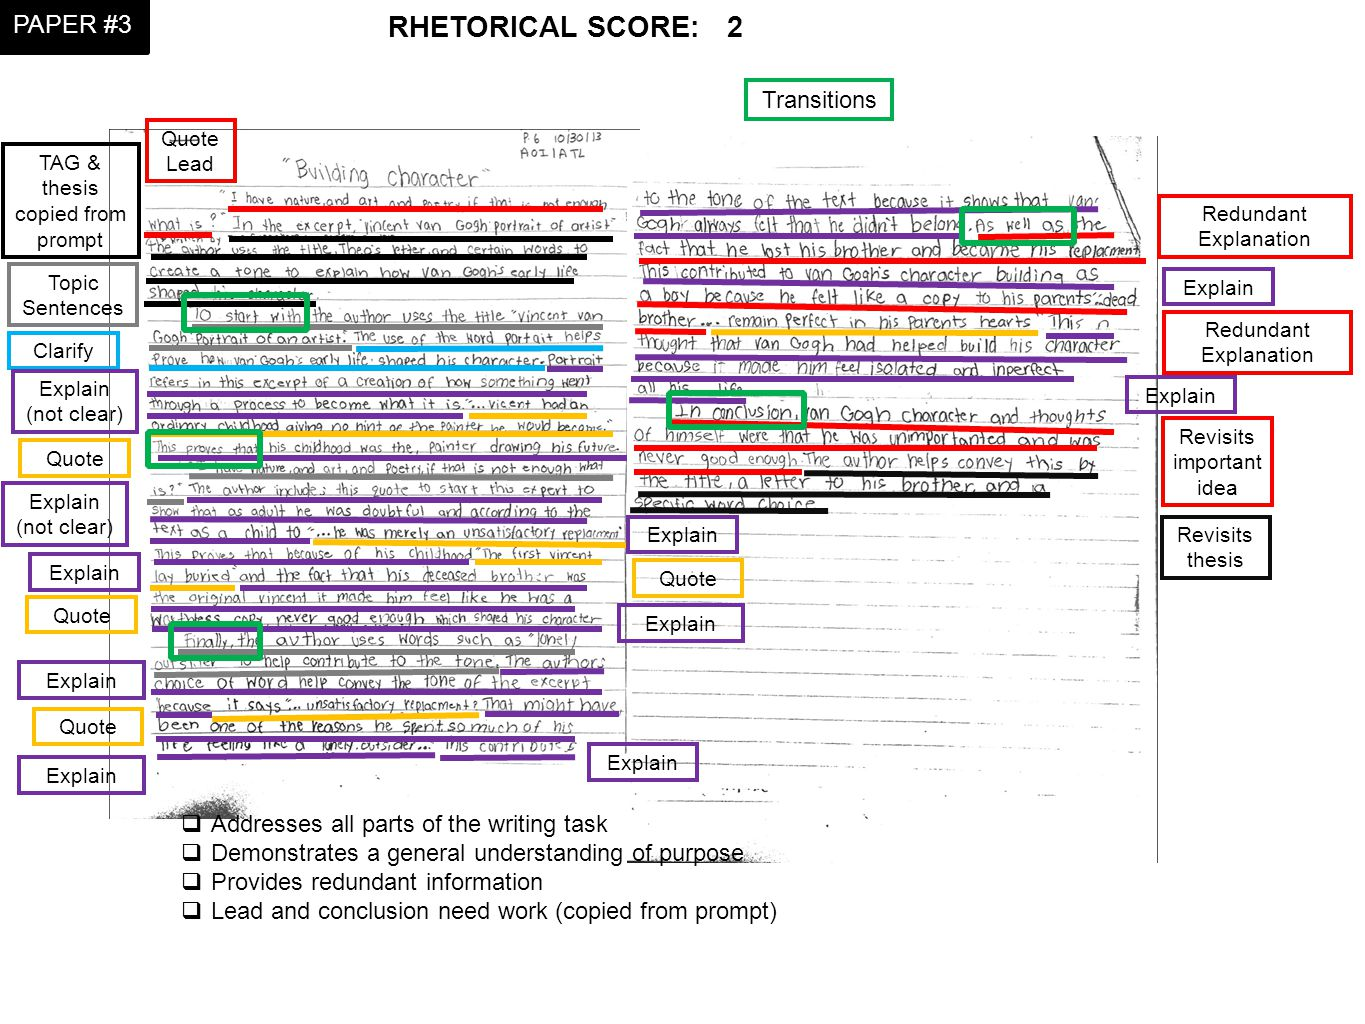 RHETORICAL SCORE: Quote Lead Topic Sentences Quote Clarify Explain Quote Explain Quote Explain Redundant Explanation Explain Redundant Explanation Explain Revisits important idea Revisits thesis TAG & thesis copied from prompt  Addresses all parts of the writing task  Demonstrates a general understanding of purpose  Provides redundant information  Lead and conclusion need work (copied from prompt) Explain (not clear) Explain Quote Explain 2 Transitions PAPER #3